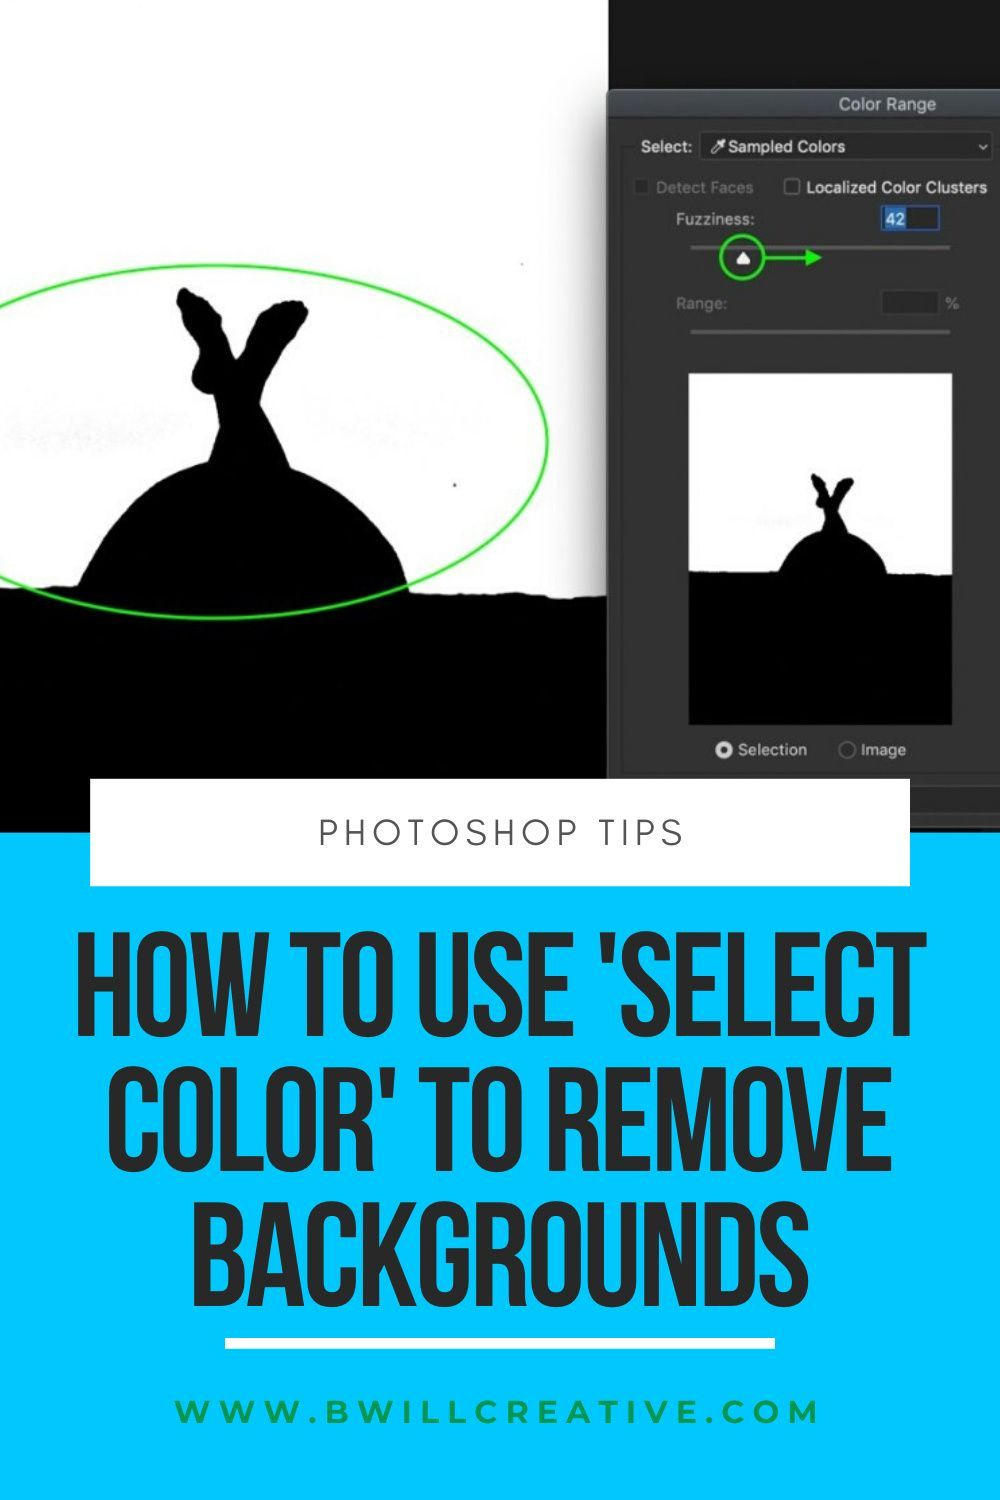 How To Use Select Color To Remove Backgrounds In